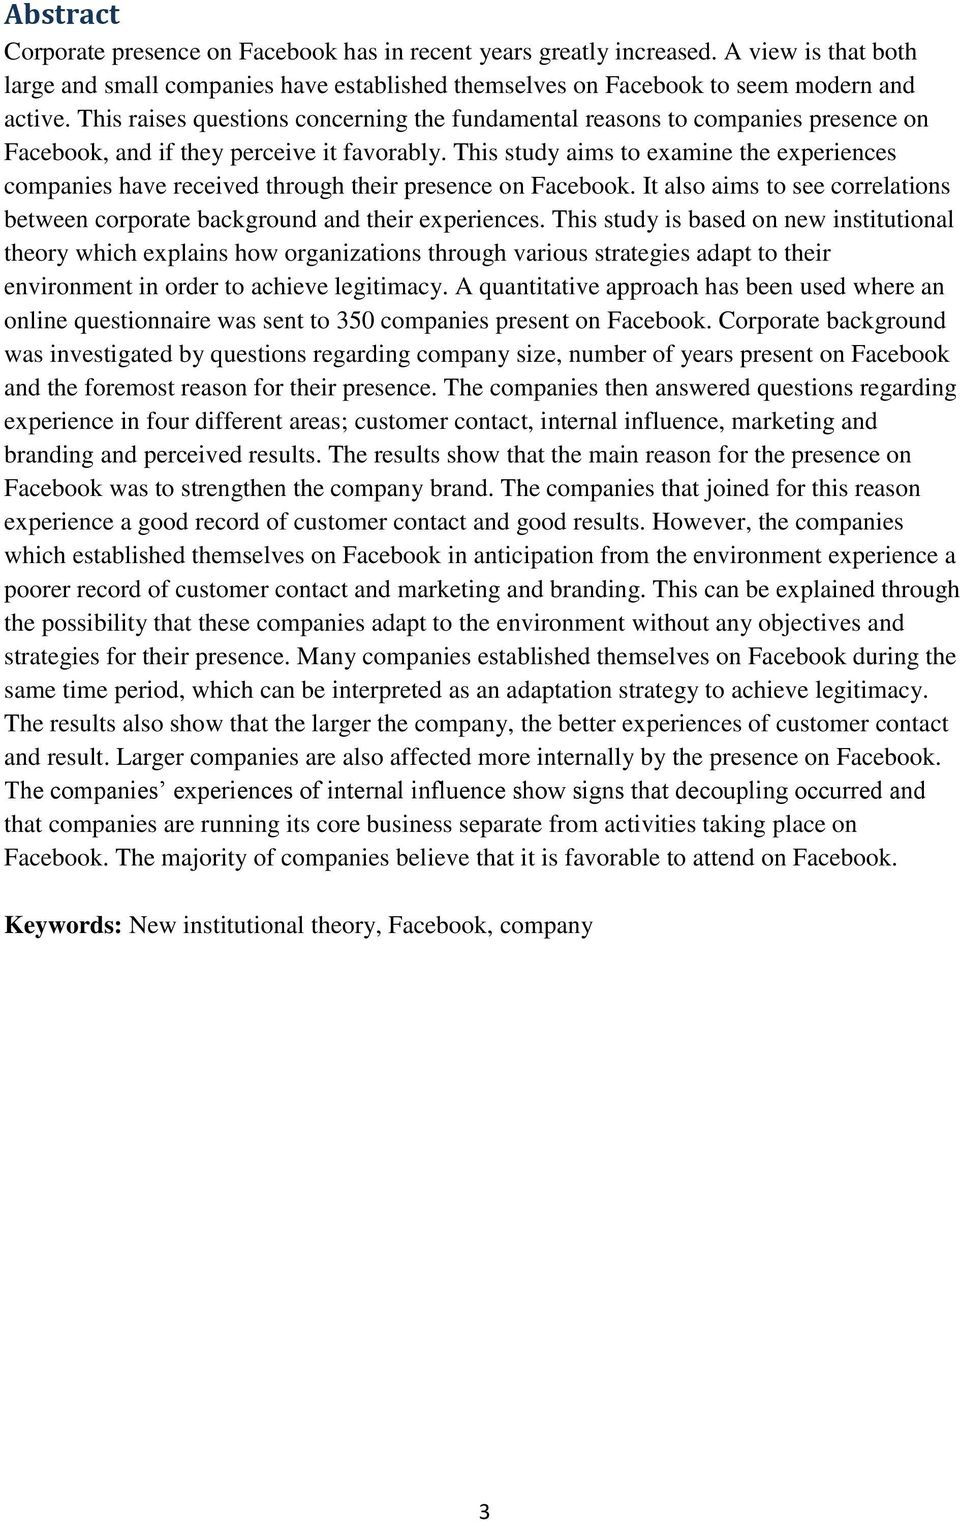 This study aims to examine the experiences companies have received through their presence on Facebook. It also aims to see correlations between corporate background and their experiences.